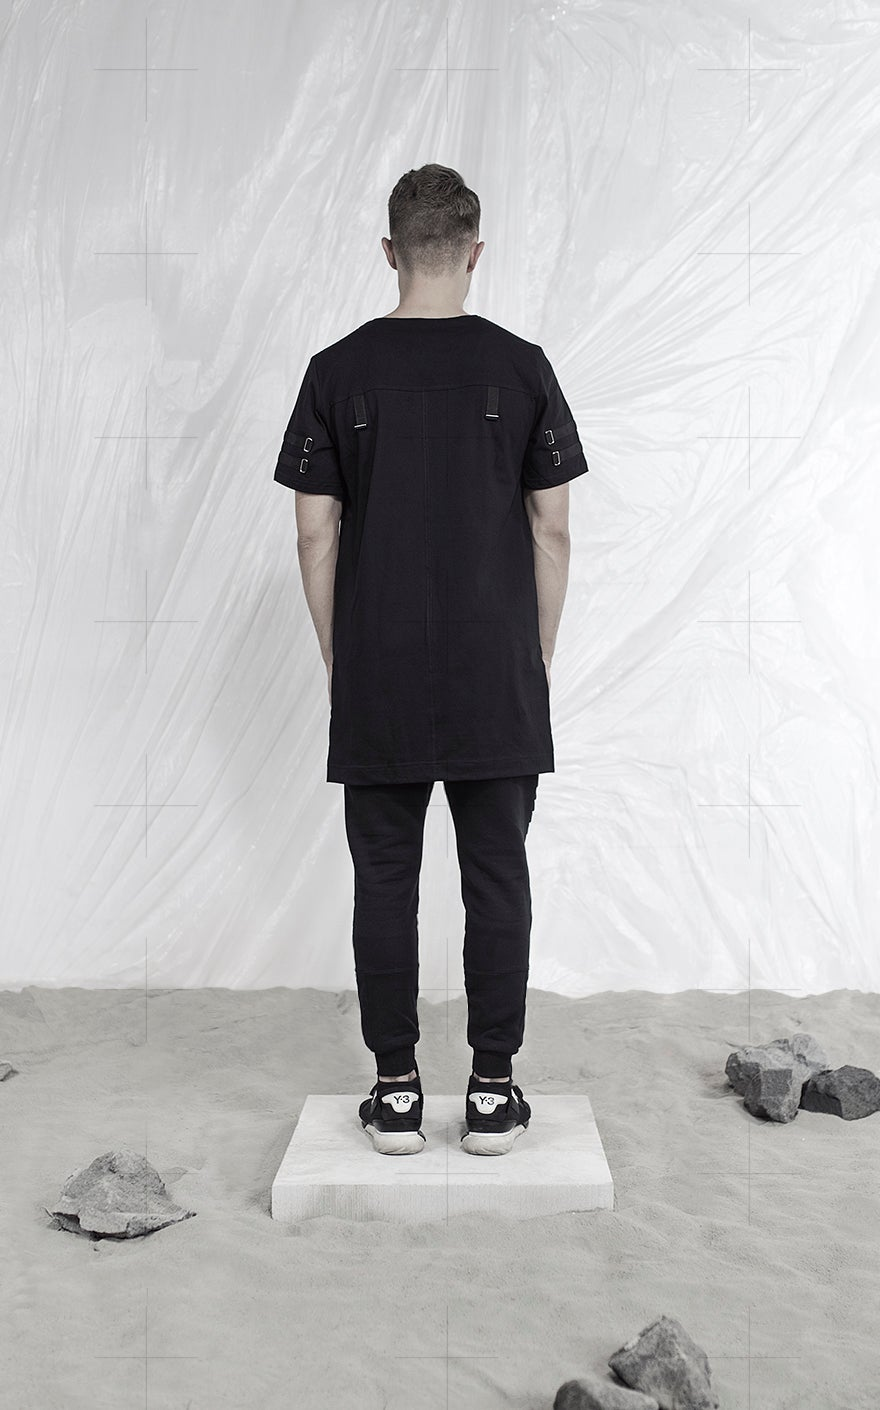 Image of Urban Flavours HOAX11 Armstrong Stripe Blk Tshirt